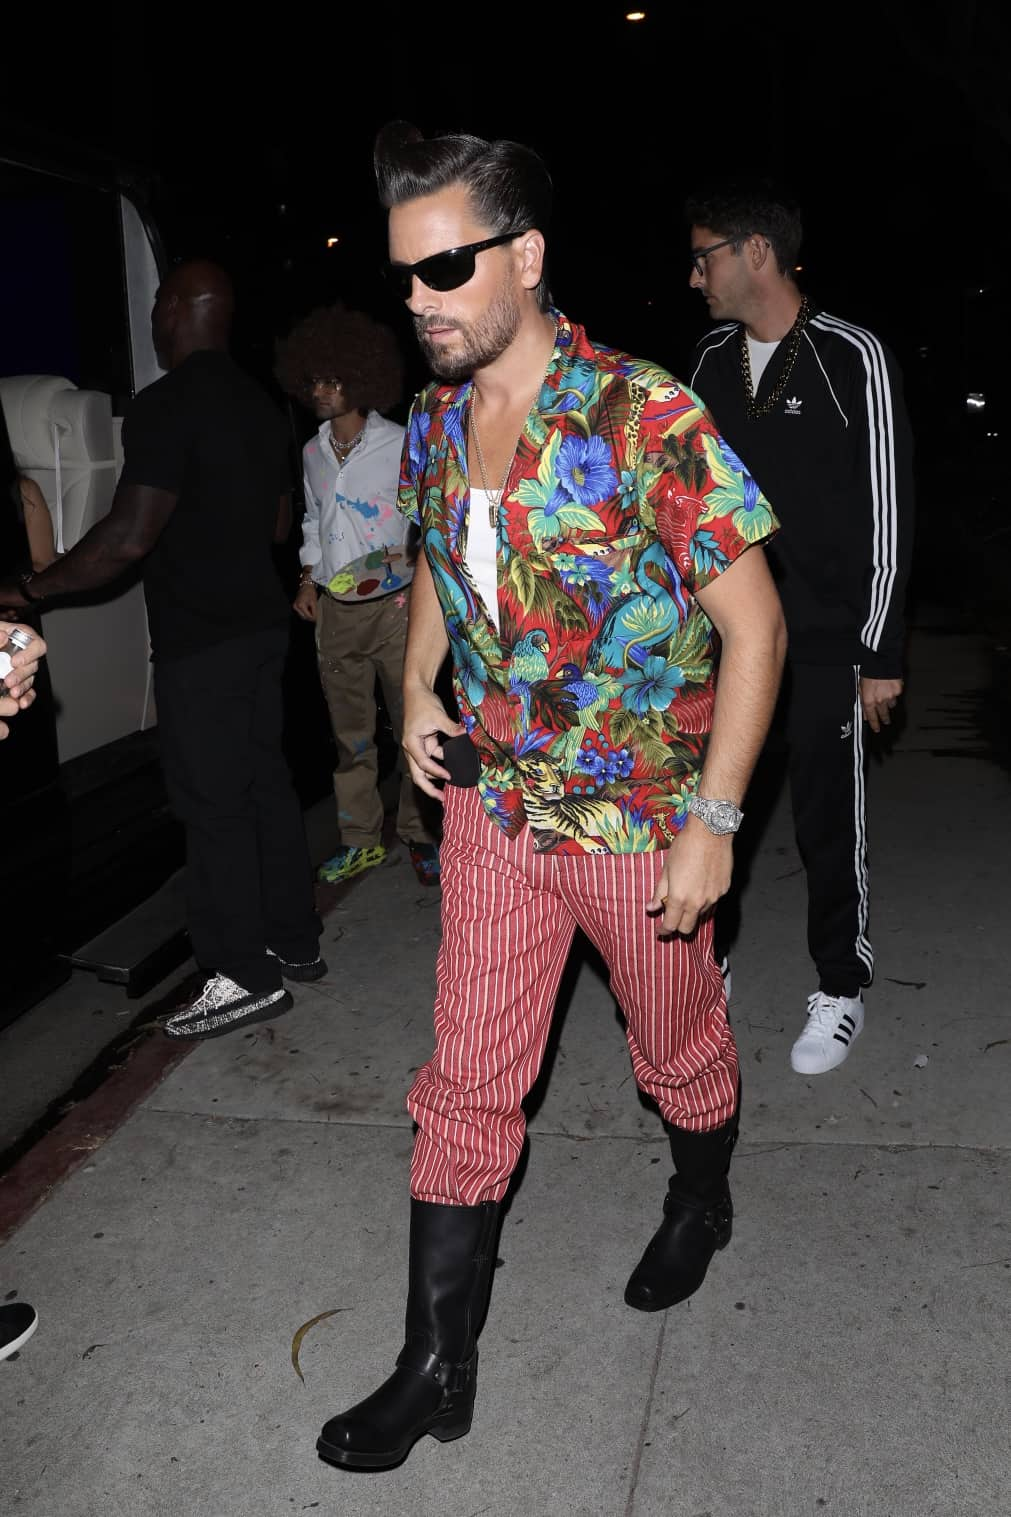 Scott Disick arrives to Halloween party